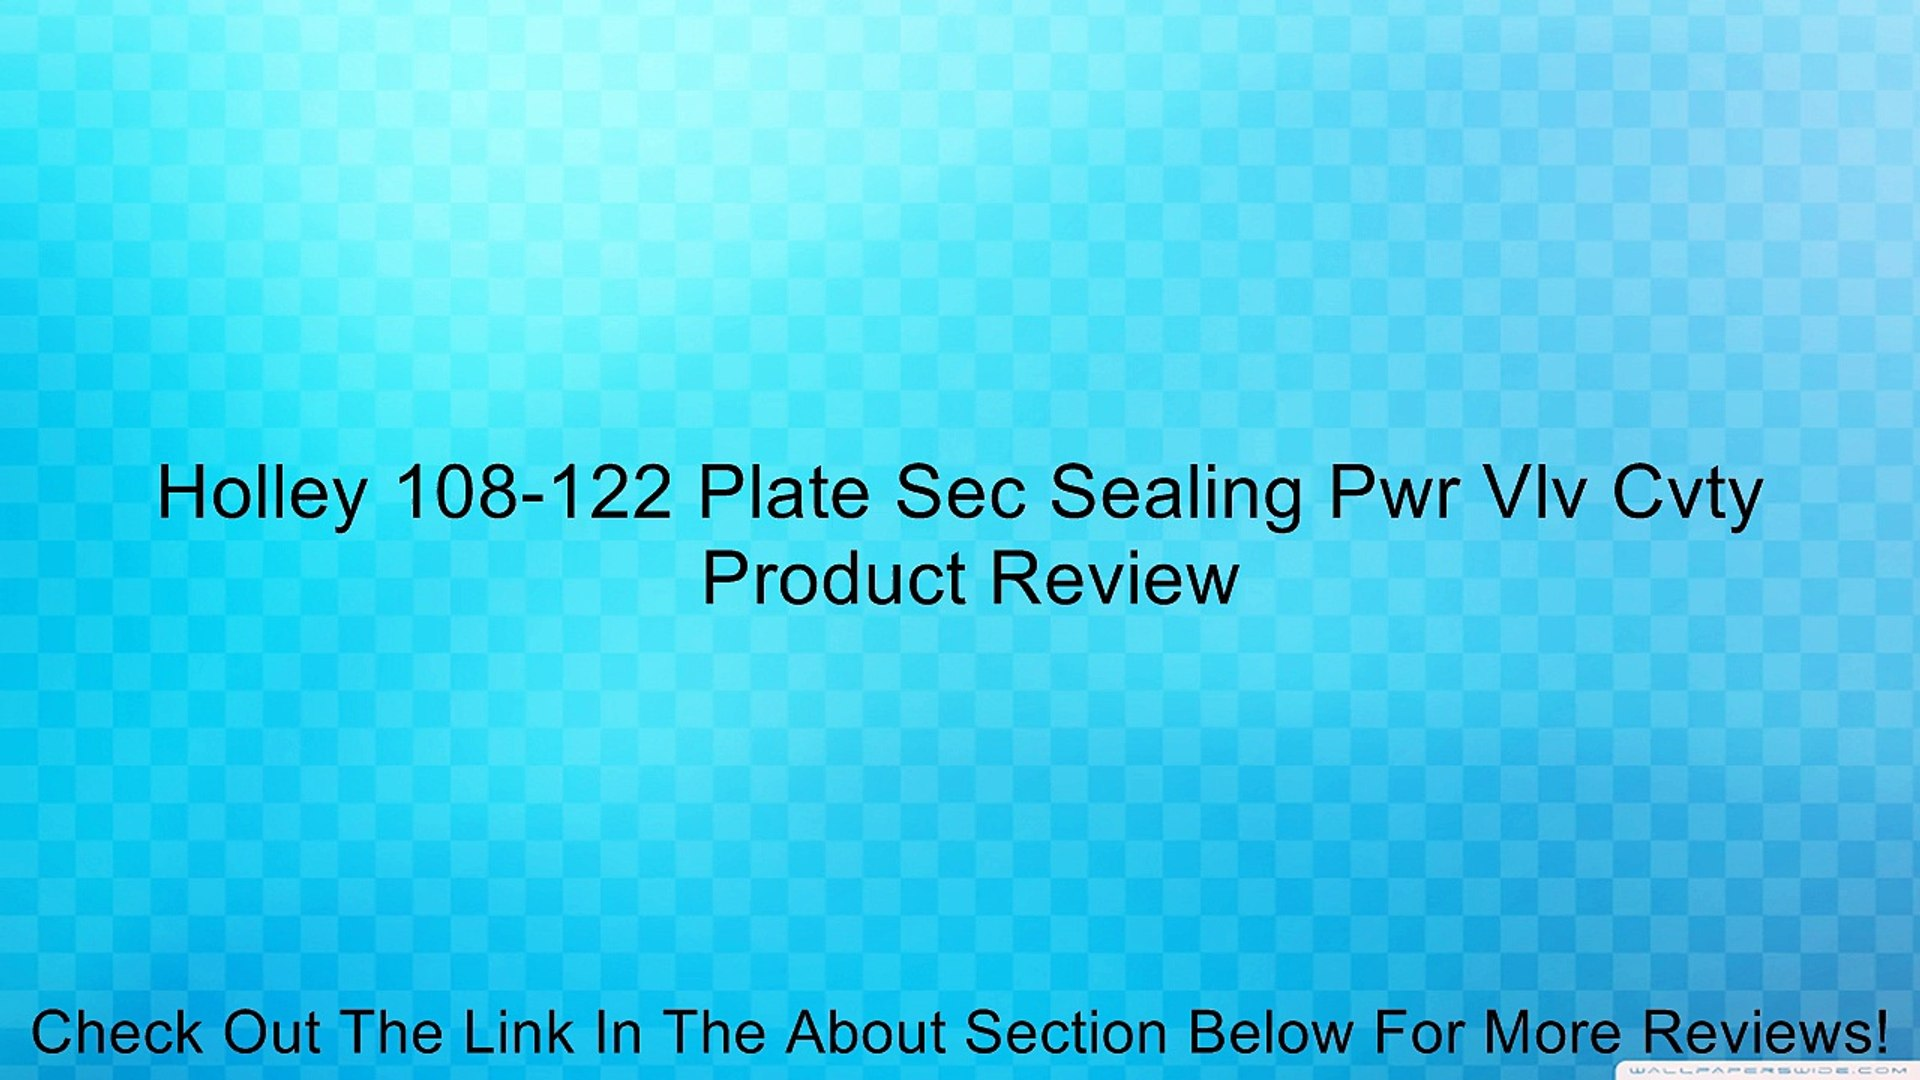 Holley 108-122 Plate Sec Sealing Pwr Vlv Cvty